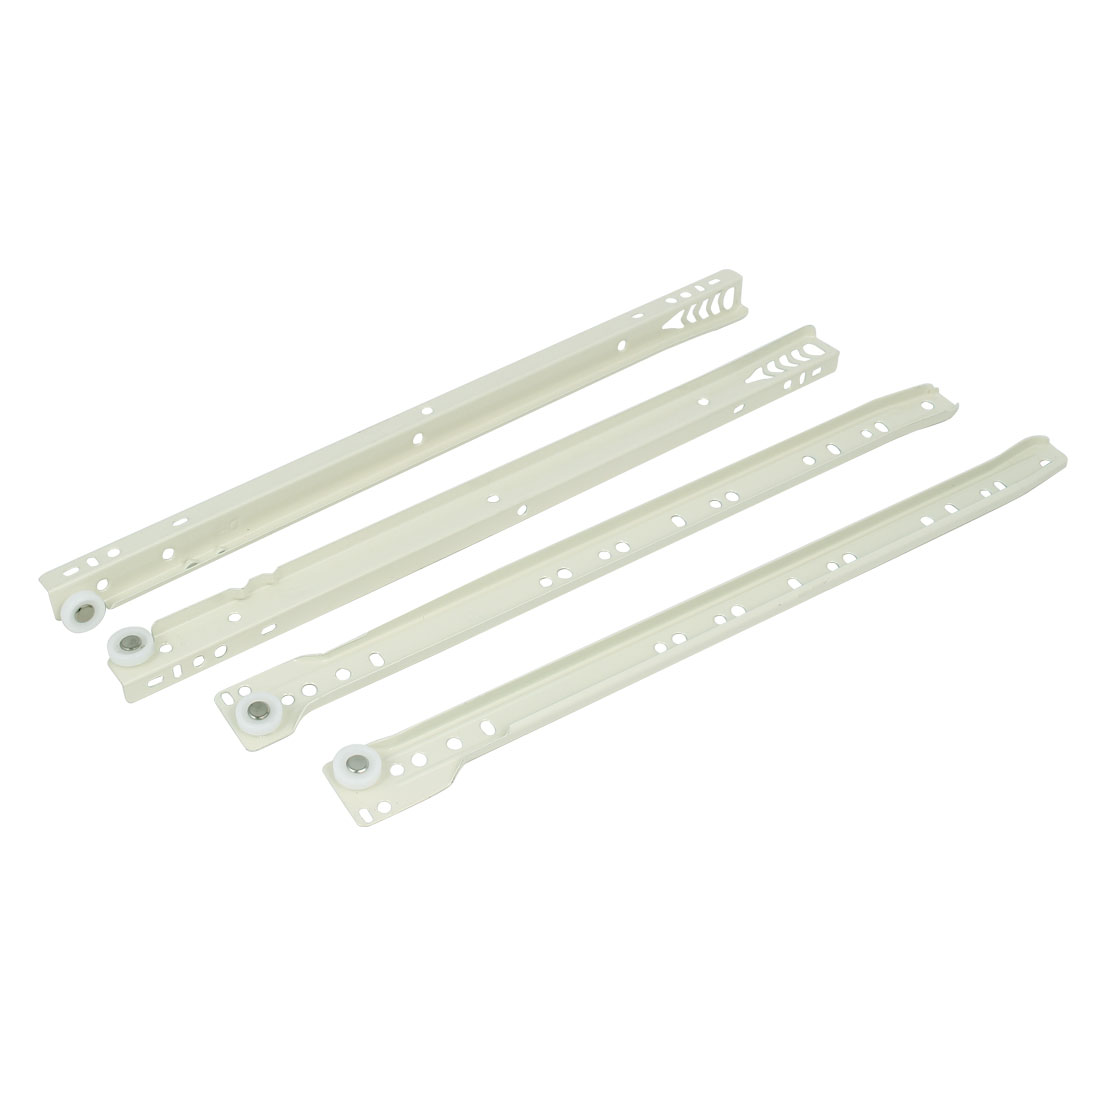 Home Office Drawer Cabinet Wheel Slide Track White 400mm 16-inch Length Pair